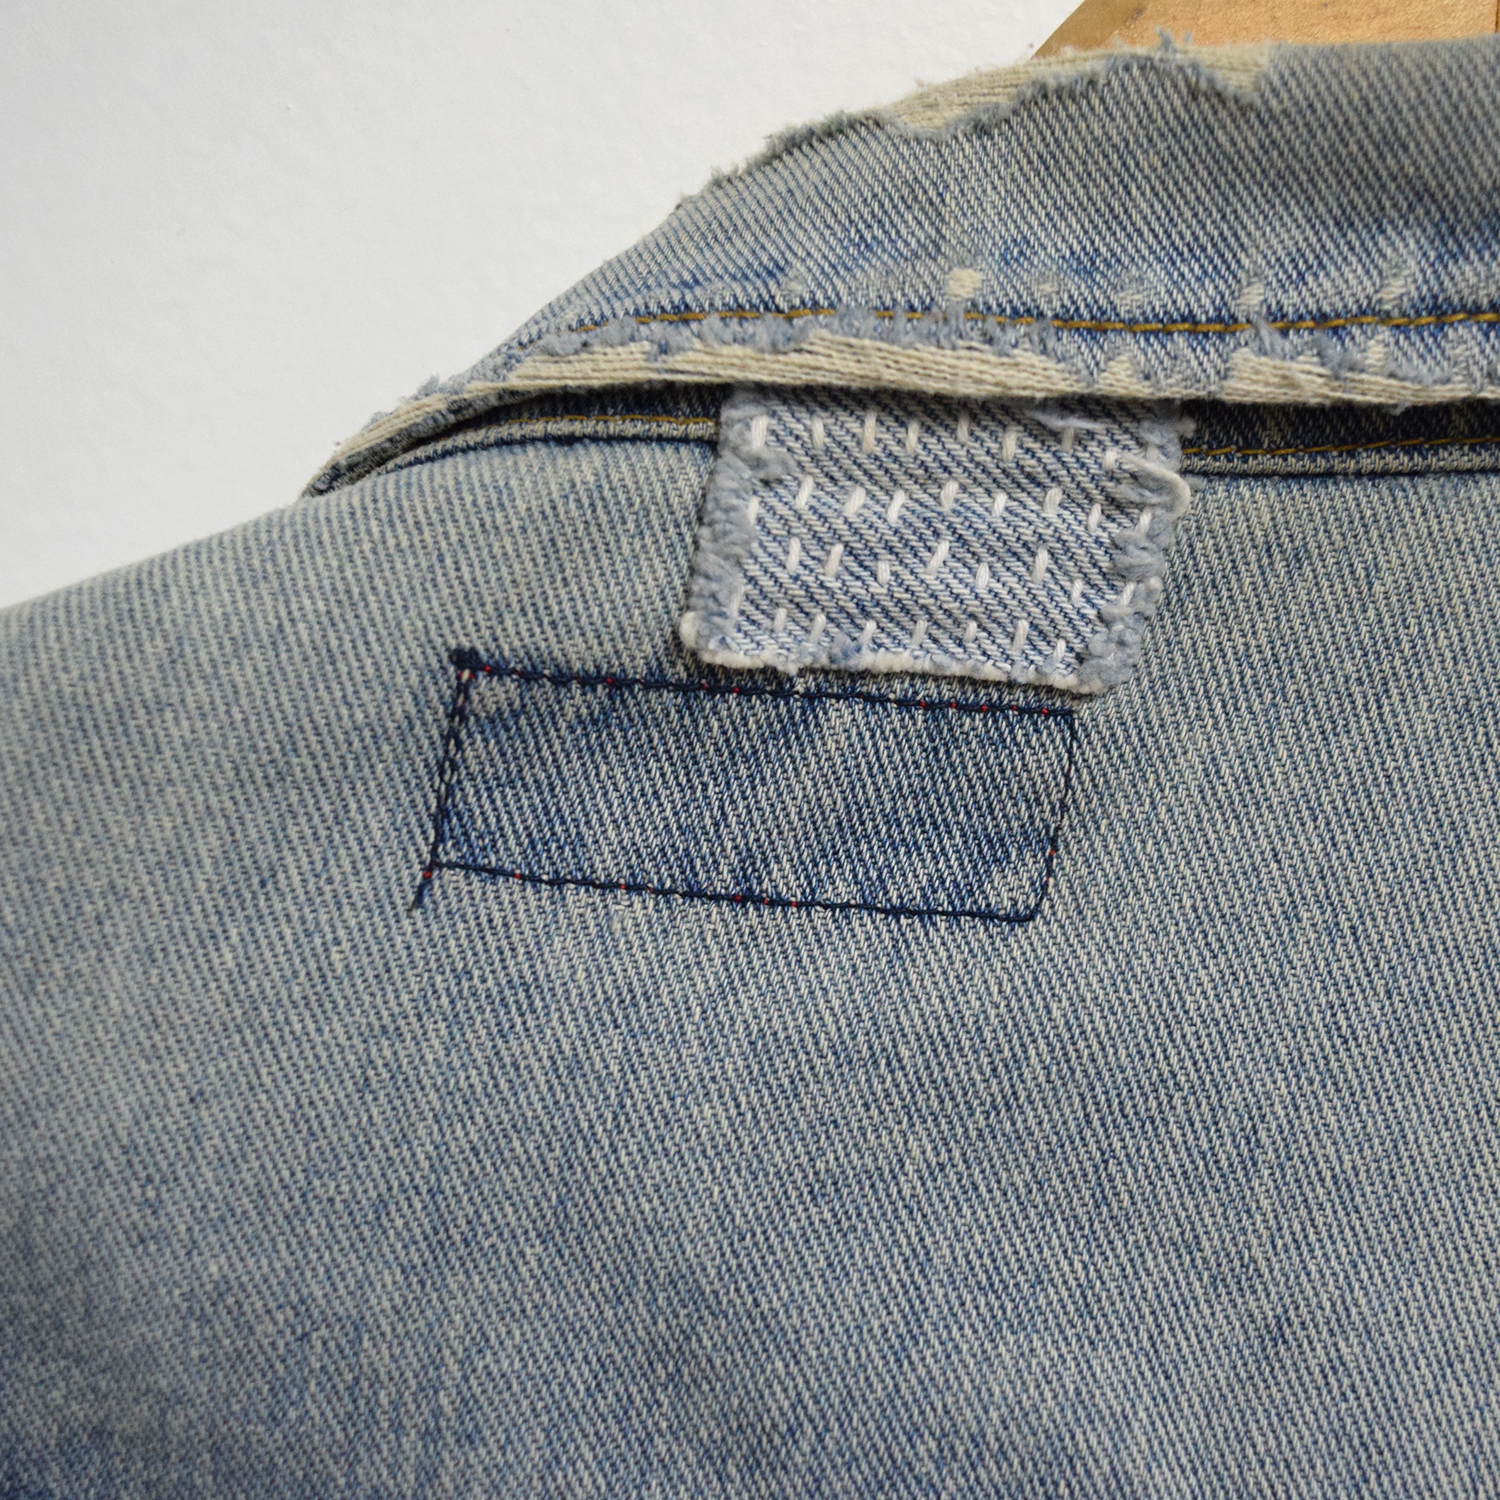 Sashiko: Wednesday, October 11.6-7:30pm - Bring your worn denim in for a little mending revival with sashiko, a traditional Japanese form of stitching that both mends and decorates clothing.